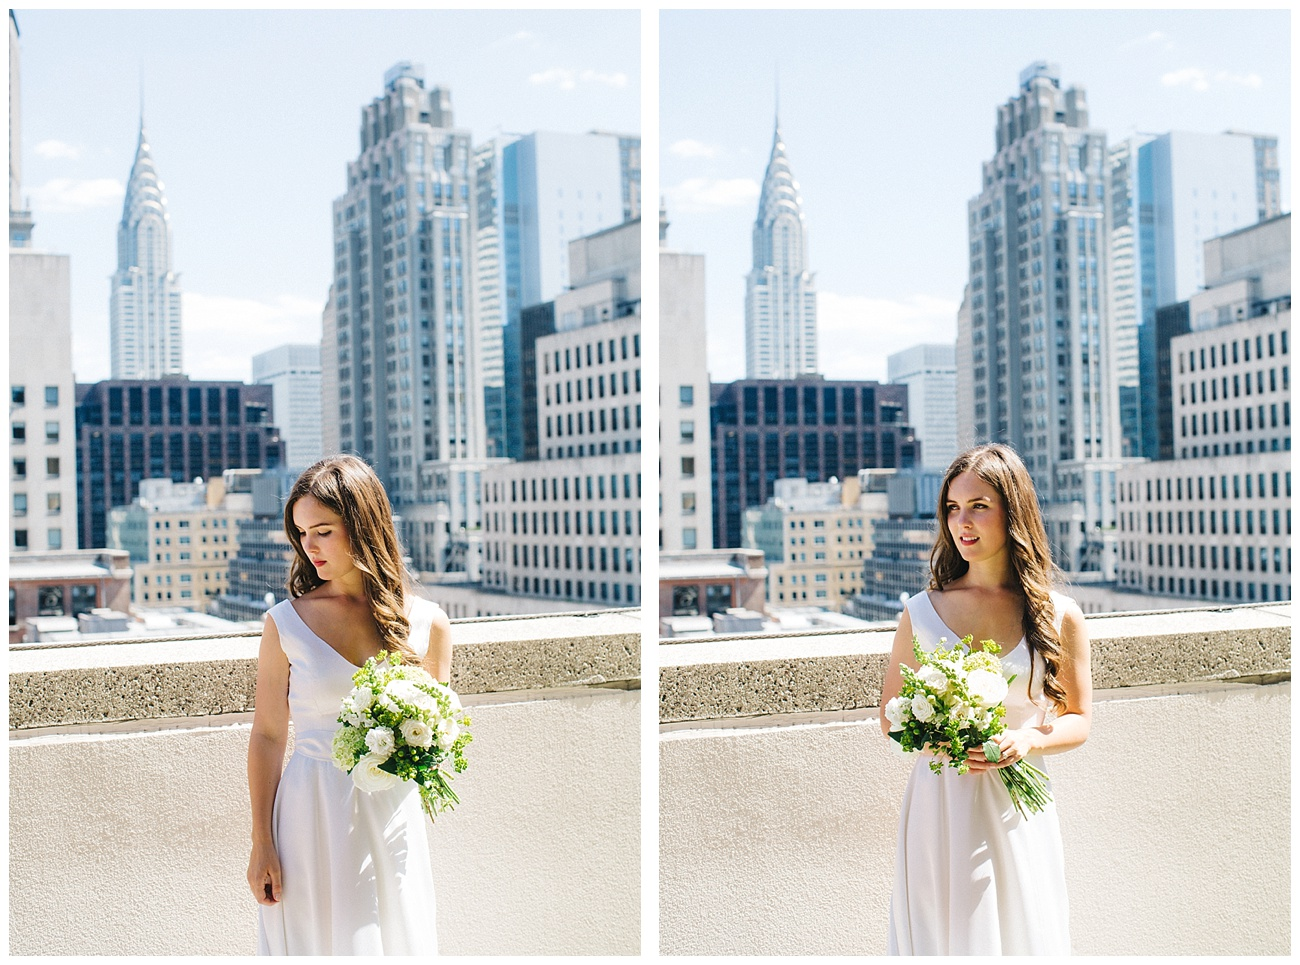 Christine Ted NYC Elopement Wedding_0010